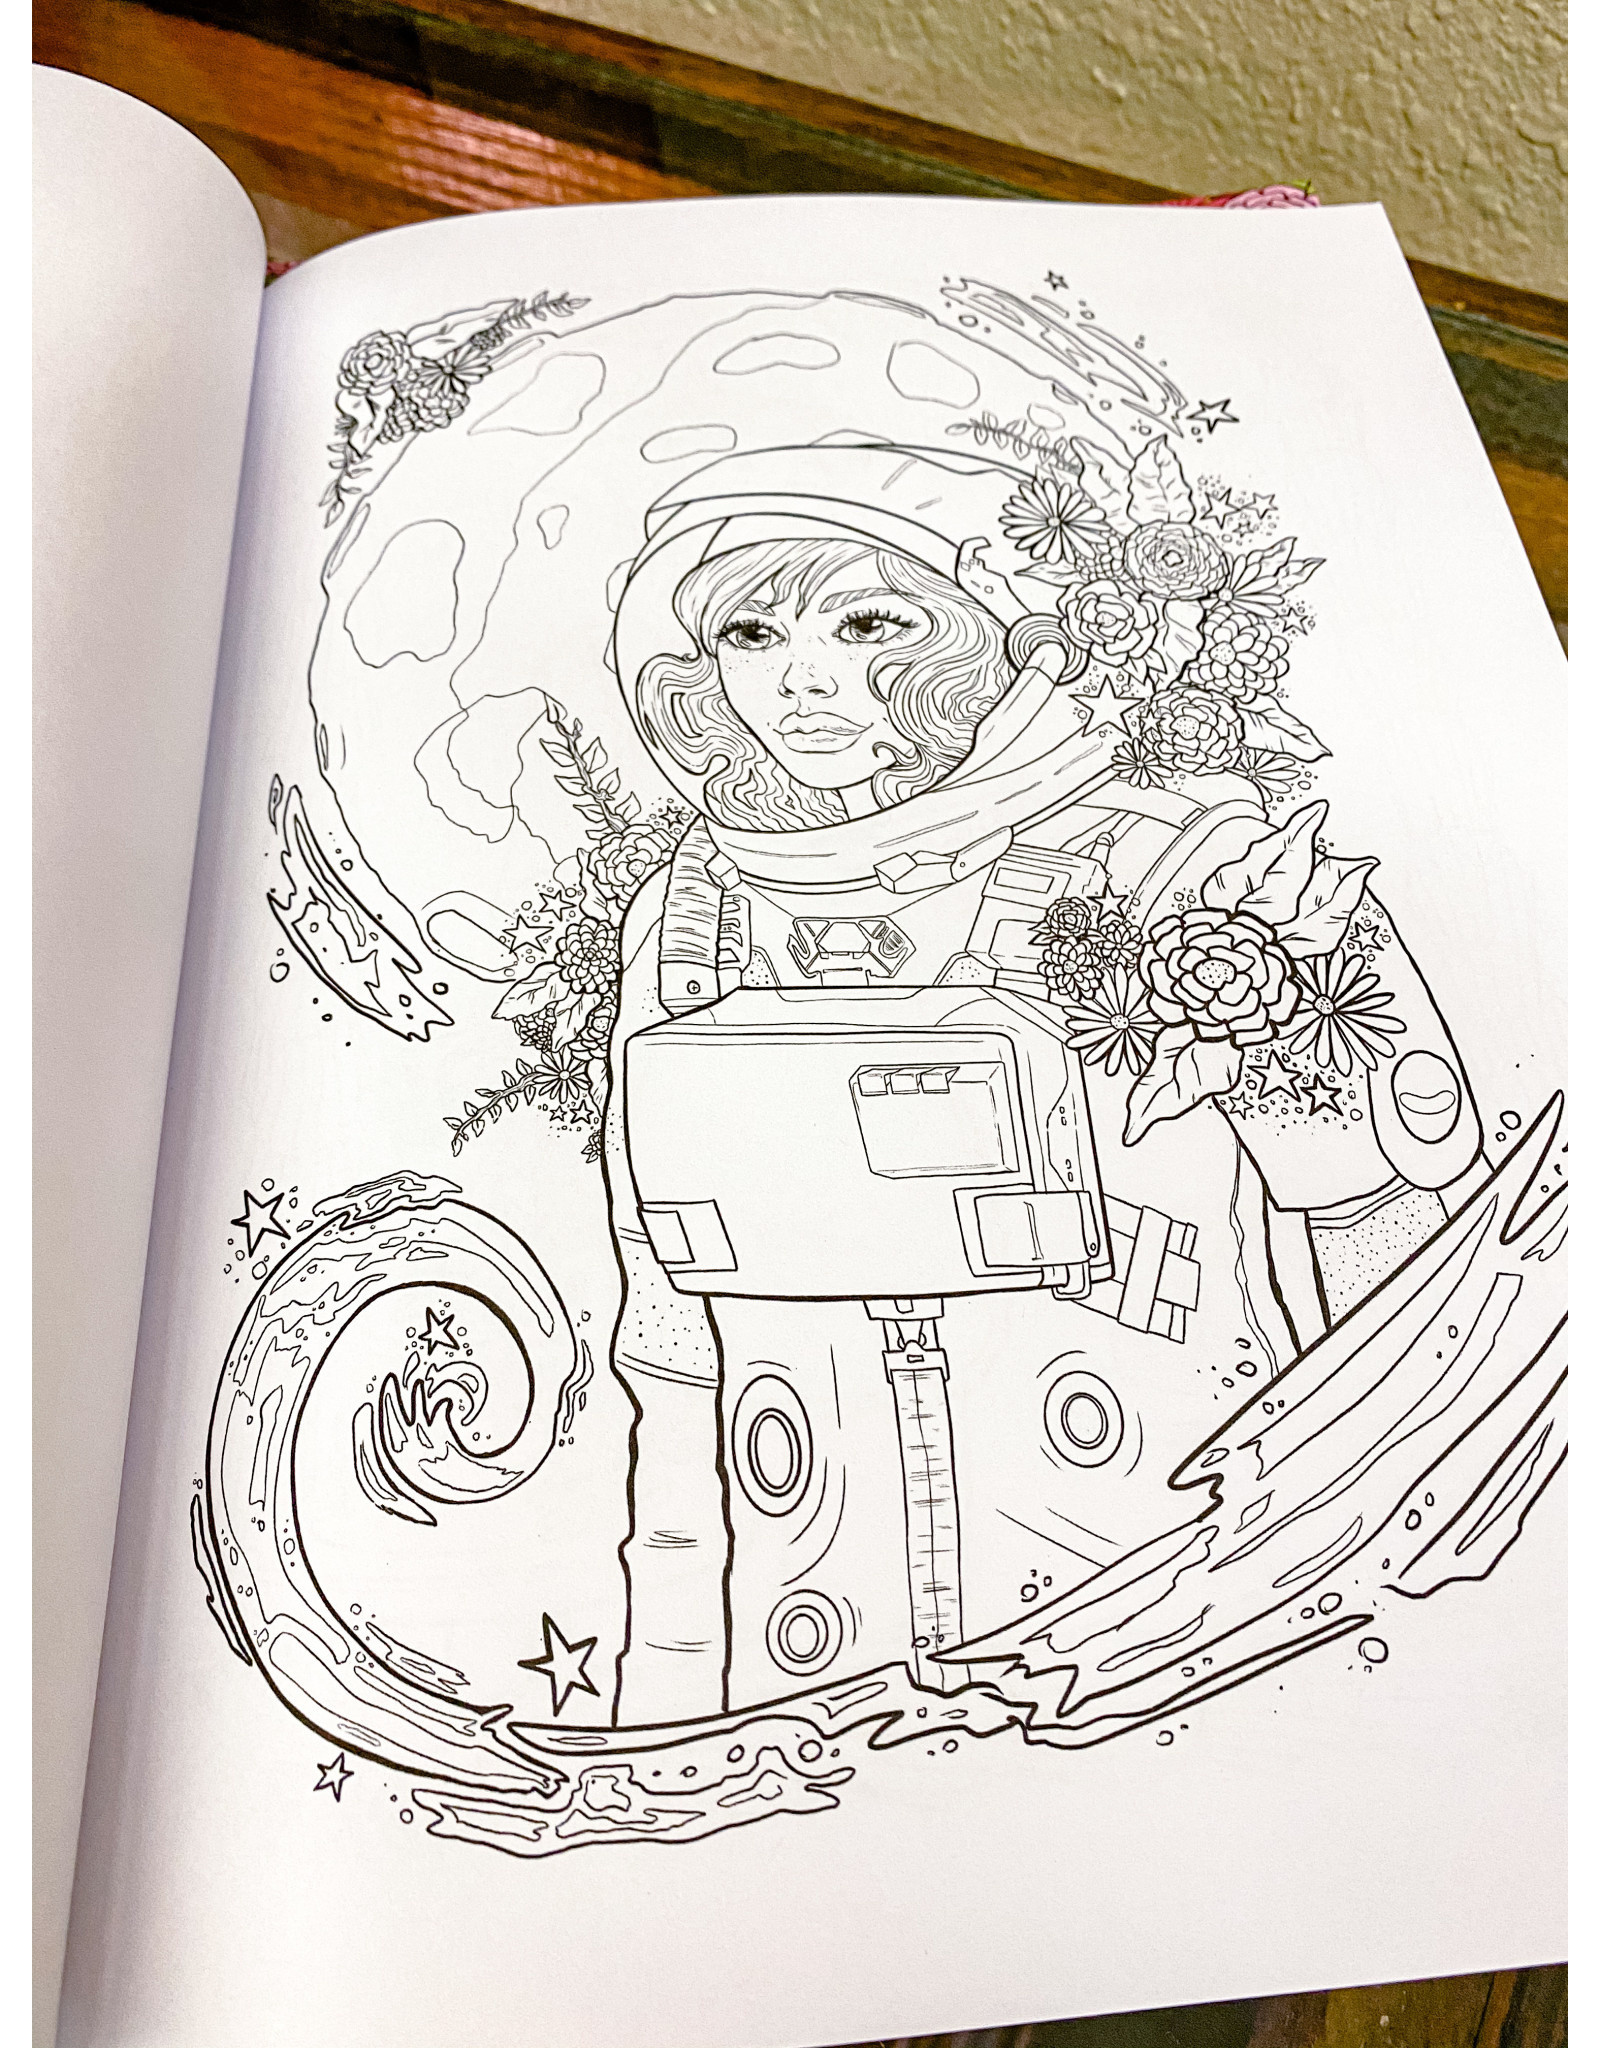 Madison Brown Designs Bloom - A Coloring Book for Industrious Women